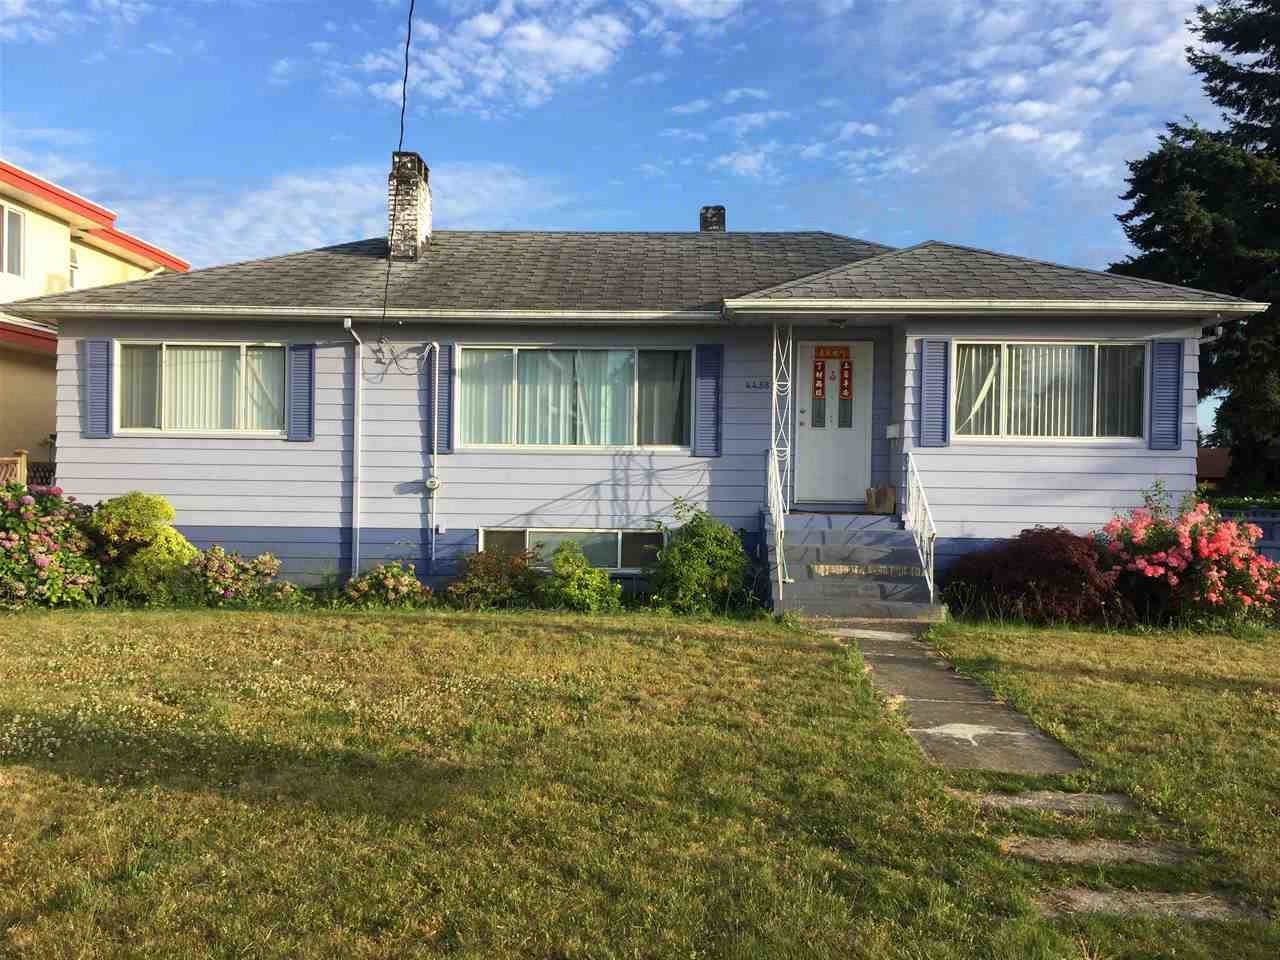 Main Photo: 4458 HURST Street in Burnaby: Metrotown House for sale (Burnaby South)  : MLS(r) # R2185887